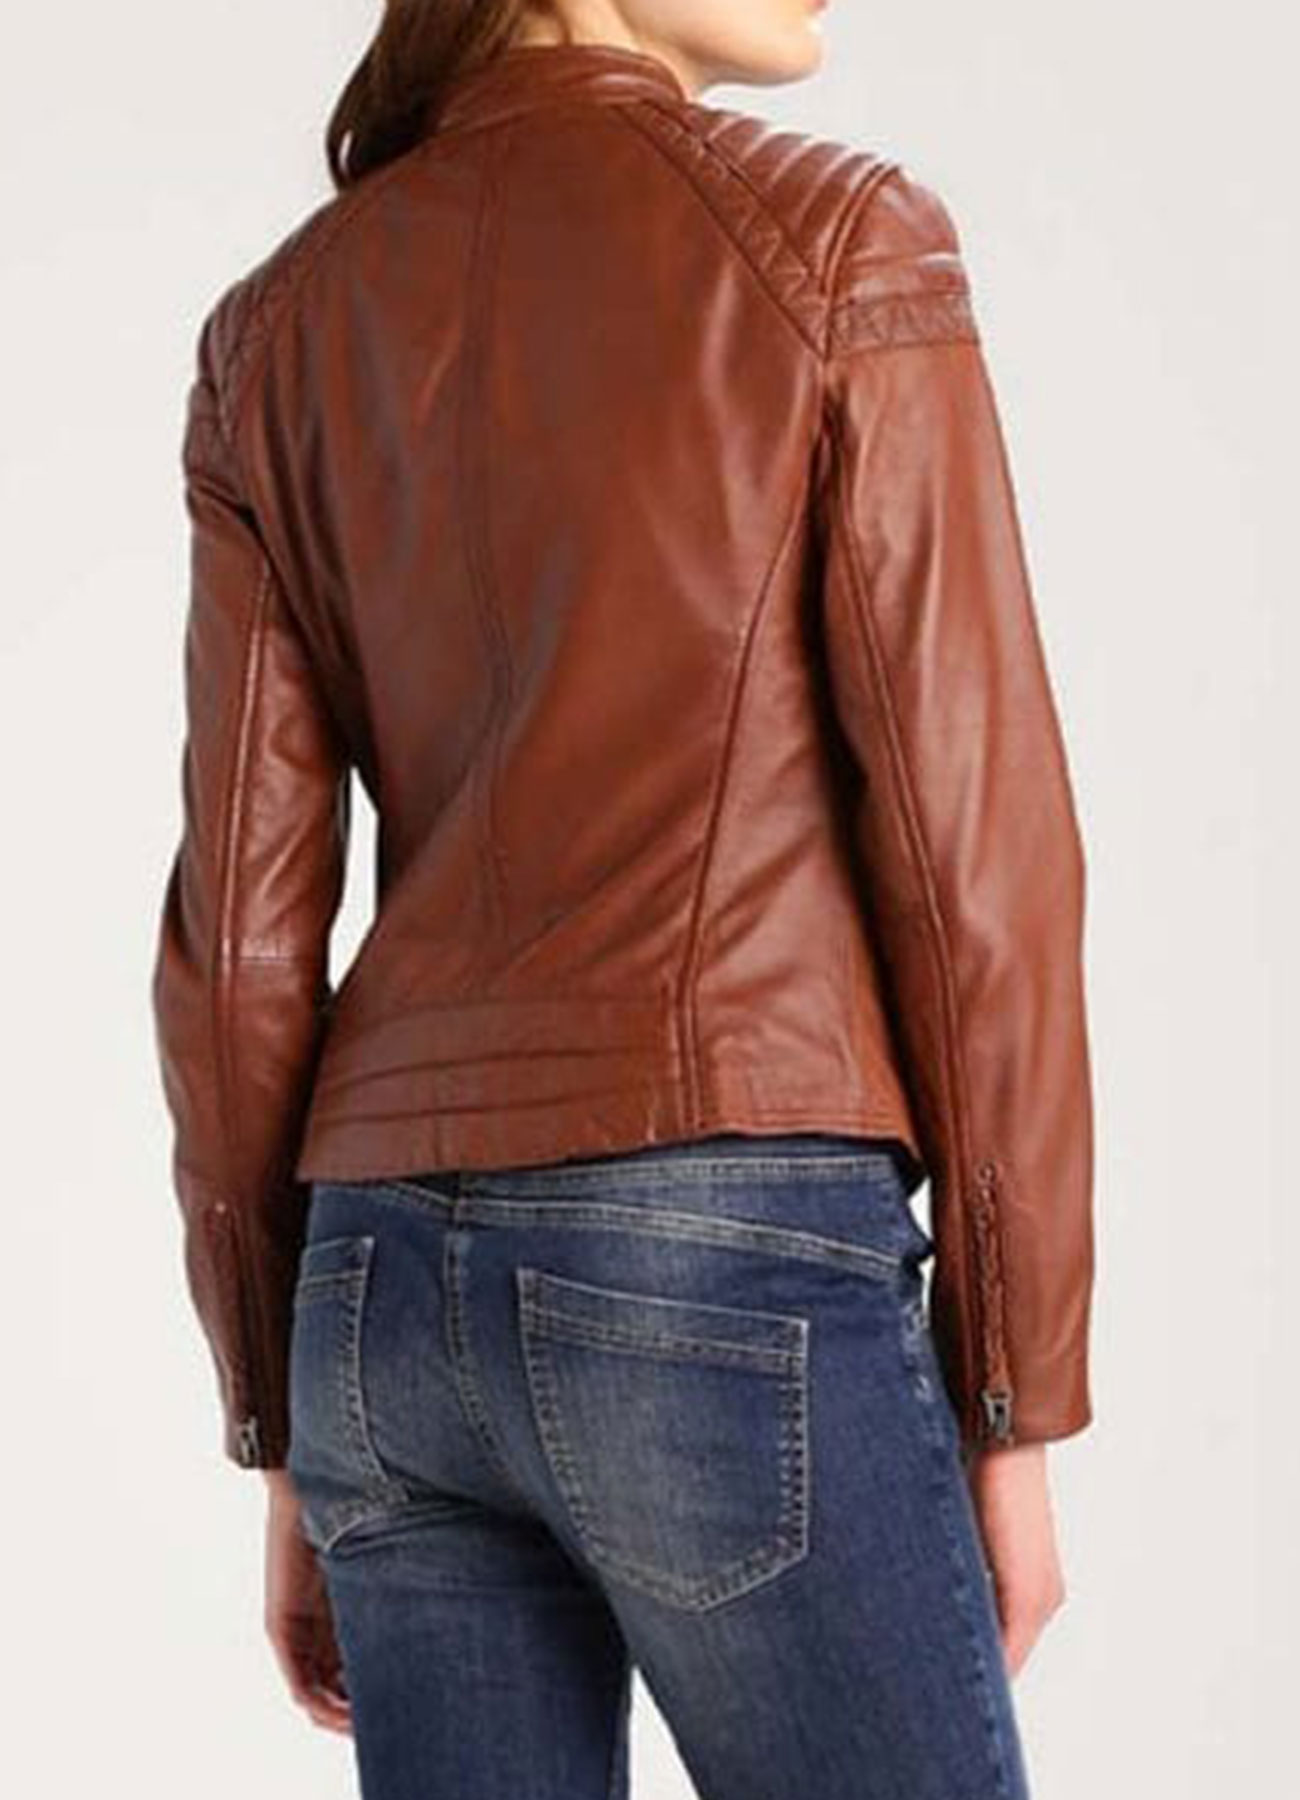 Women's Brown Cafe Racer Jacket Faux Leather